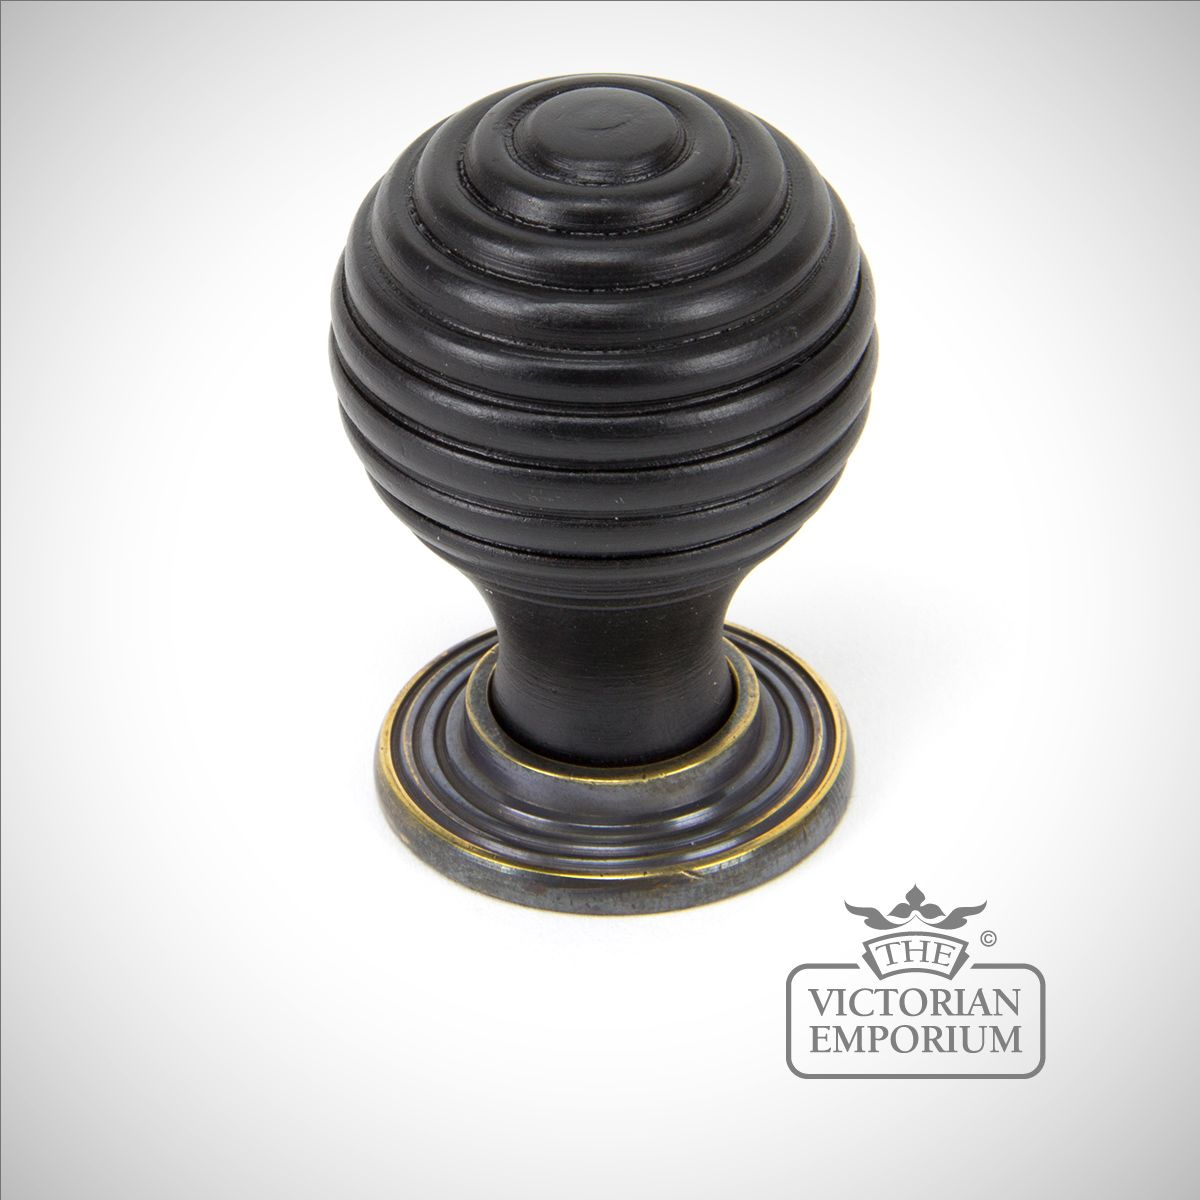 Anvil 83574 Ebony Antique Brass Beehive Door Knobs: Ebony & Antique Brass Beehive Cabinet Knob